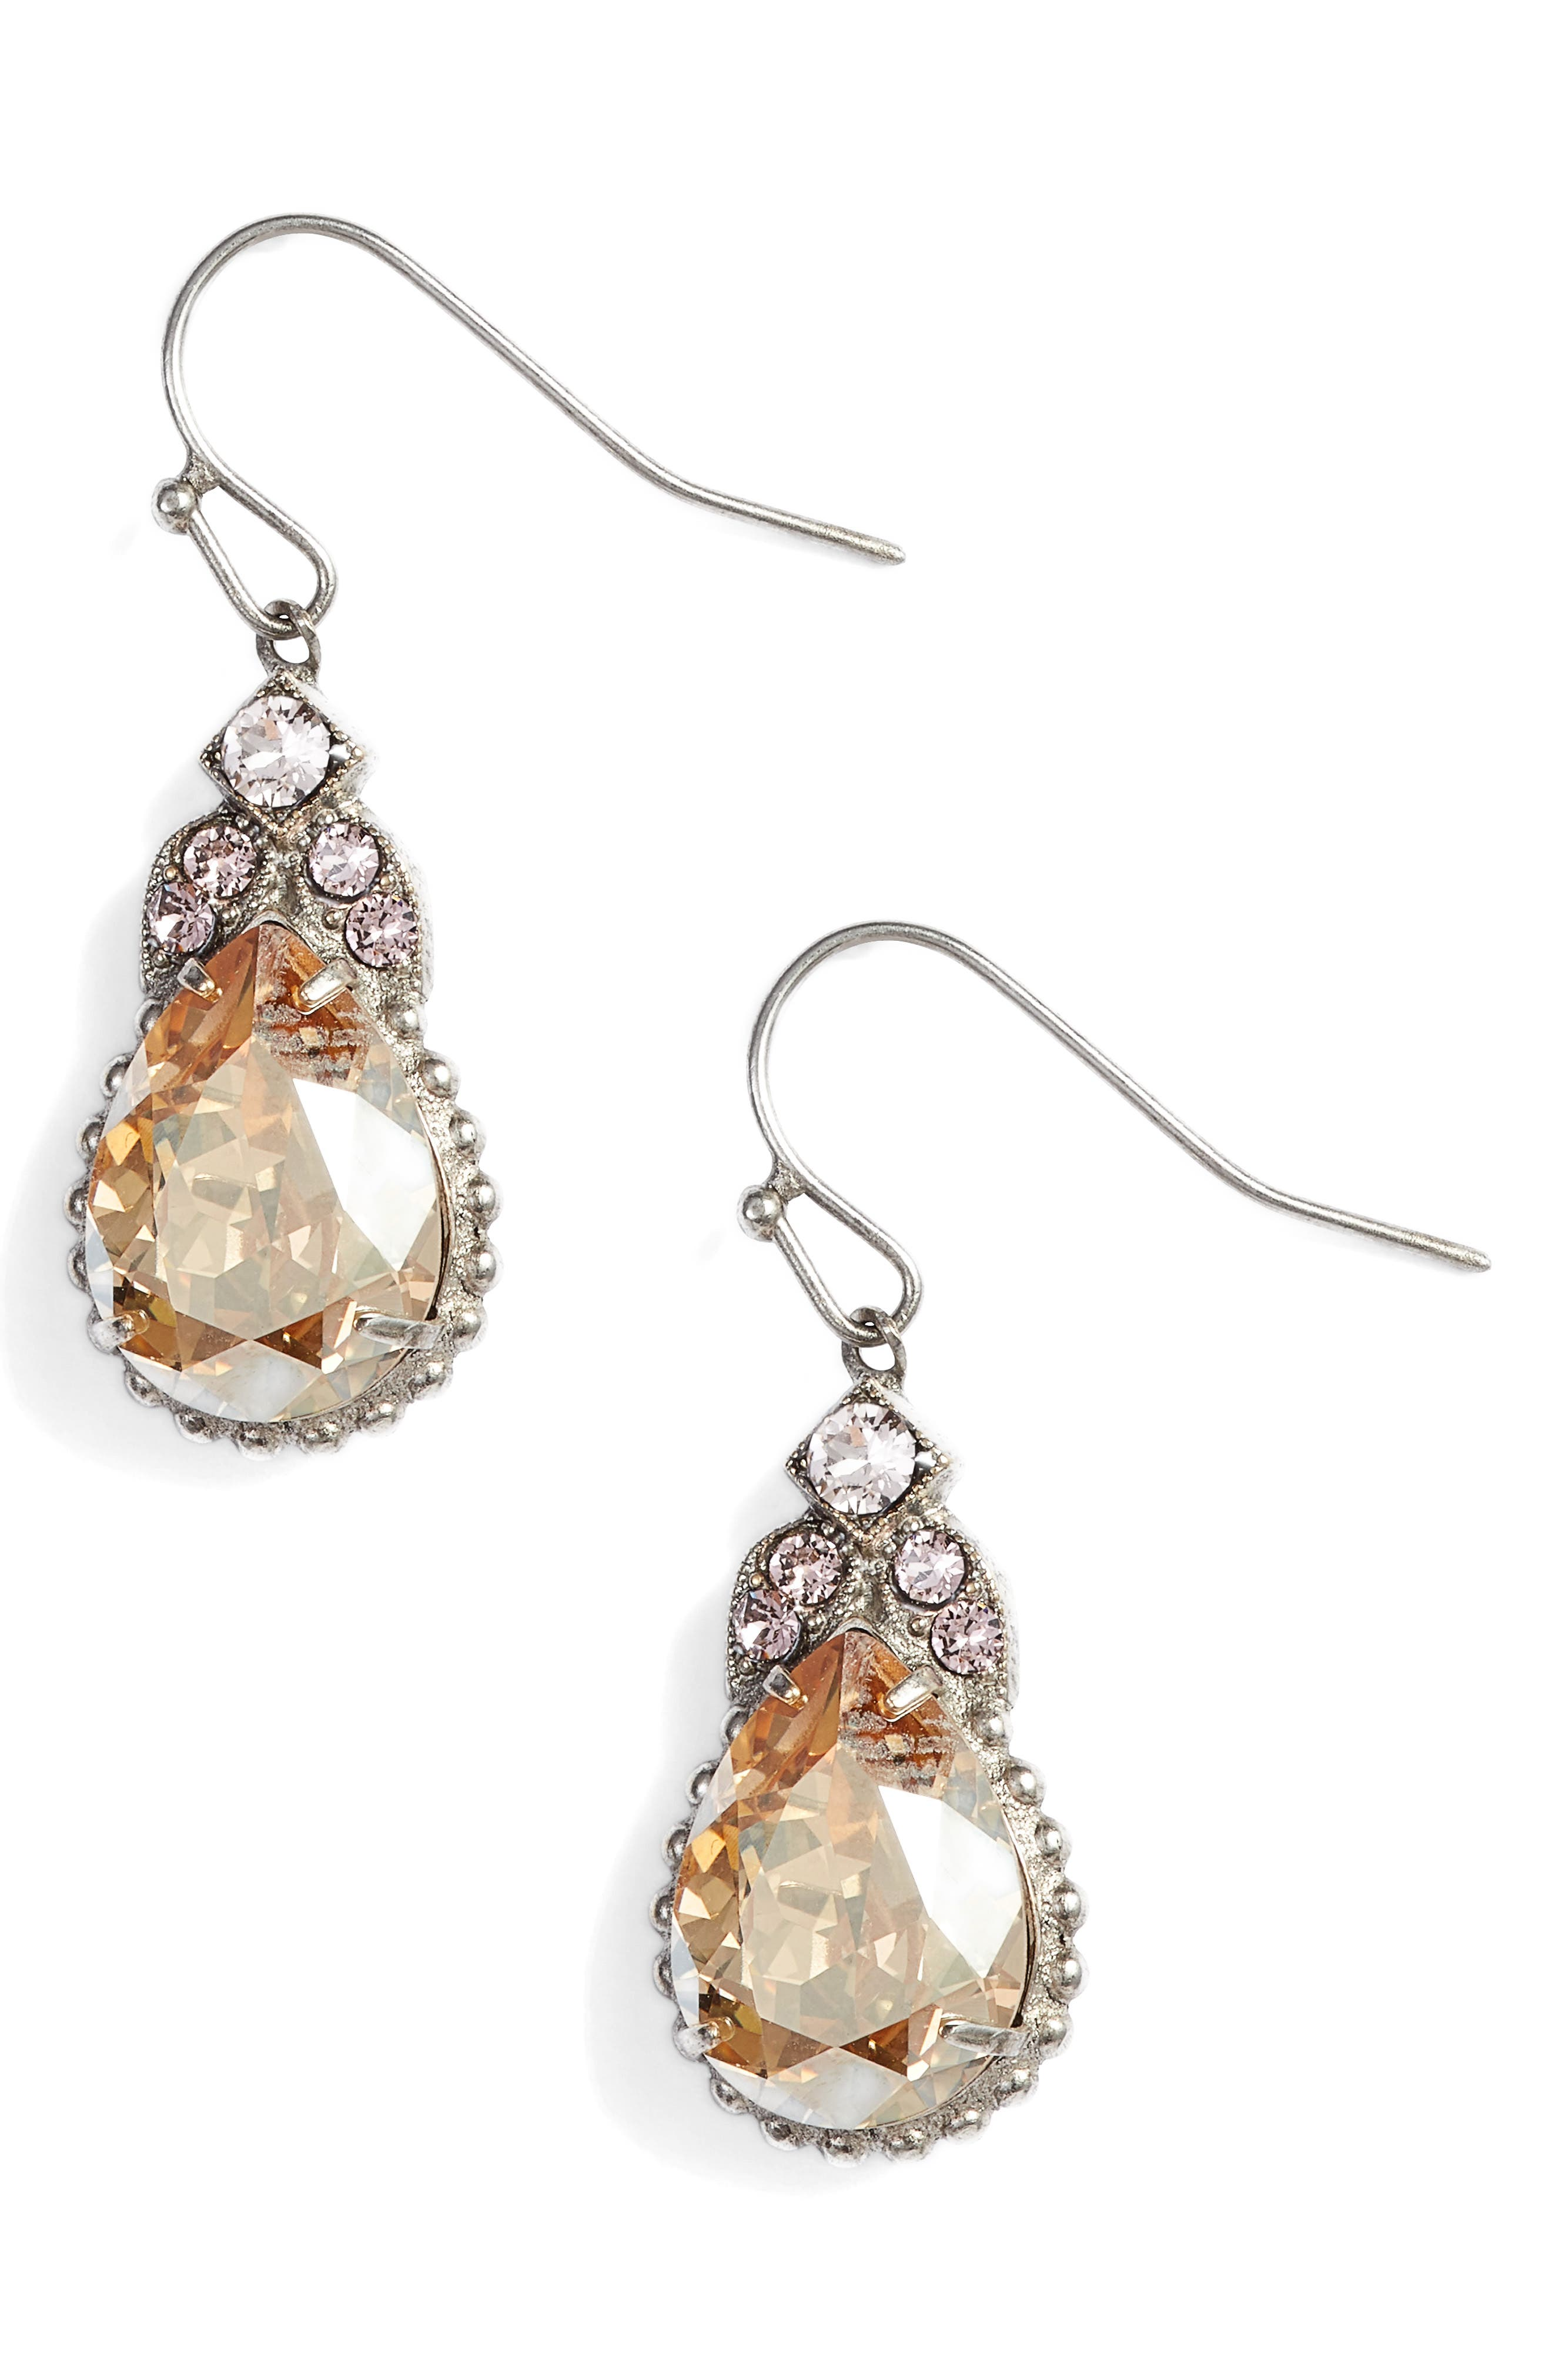 Decorative Deco Crystal Drop Earrings,                             Main thumbnail 1, color,                             Pink